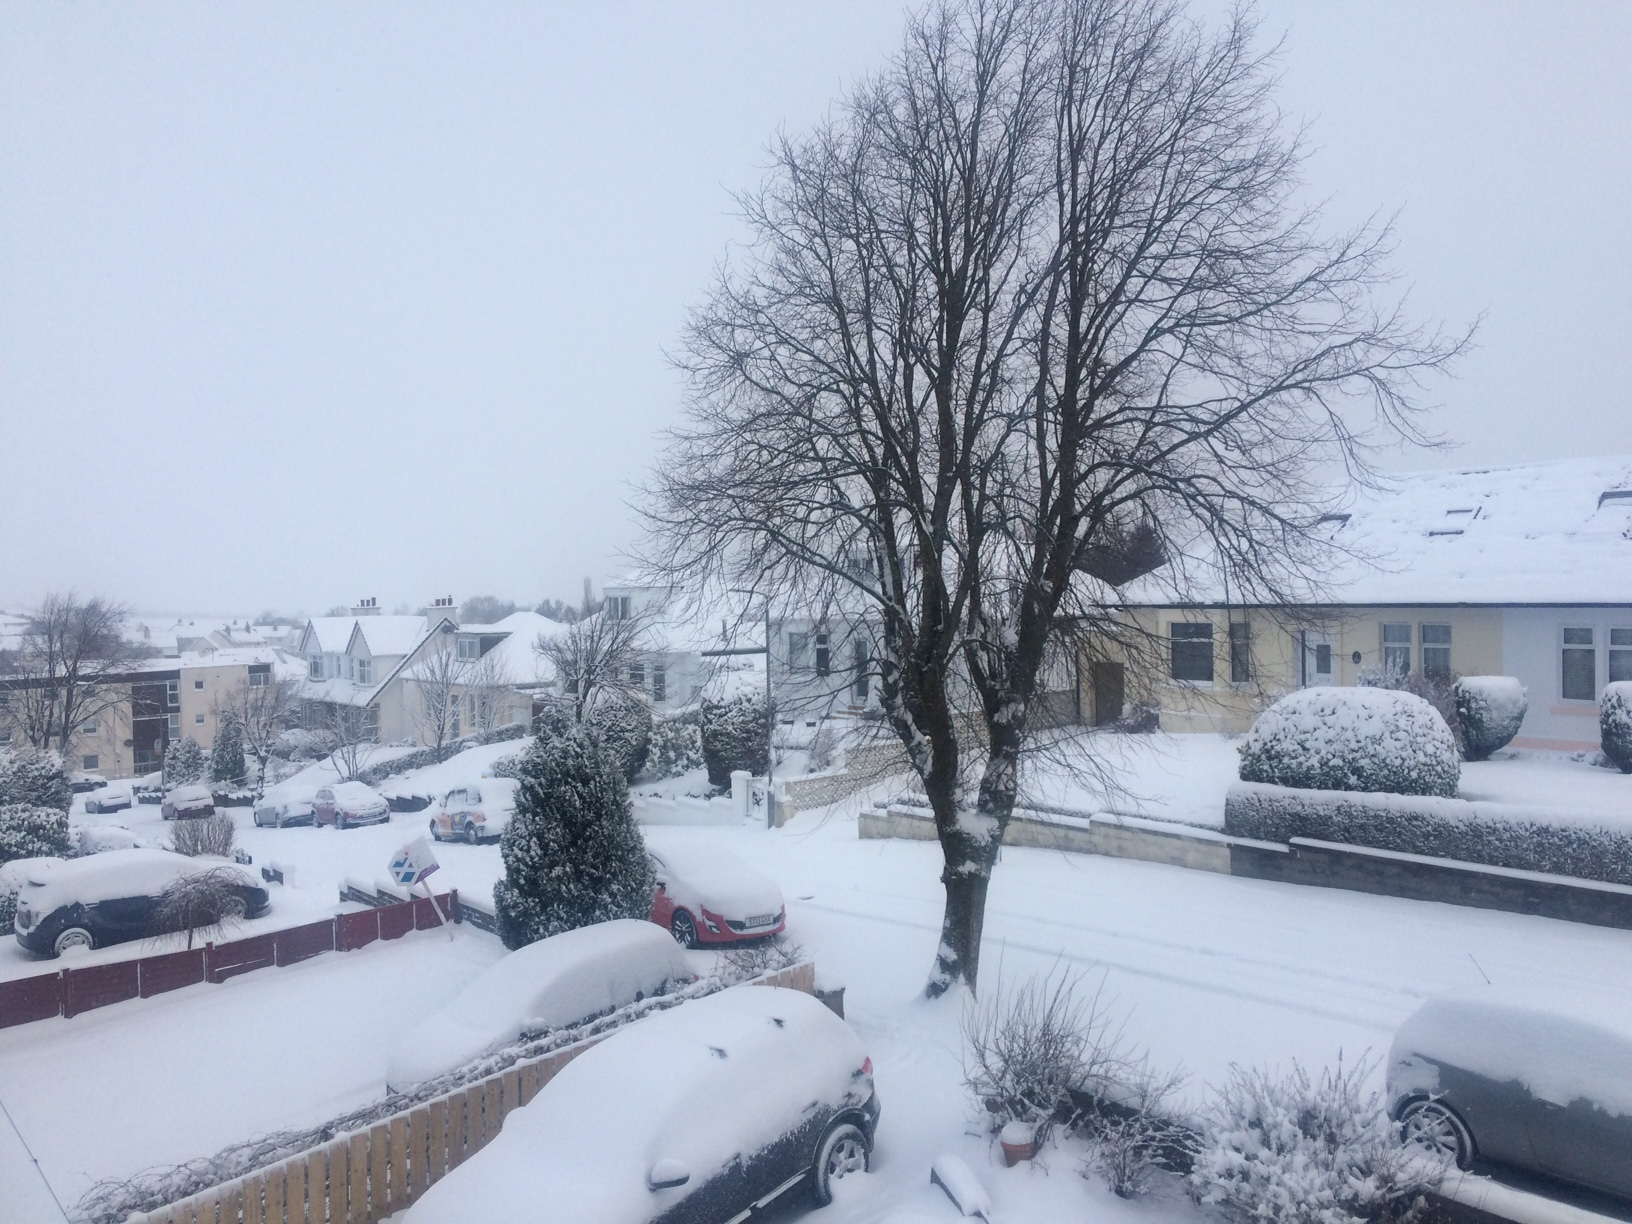 Public told to expect 'cancellations' as weather warning upgraded to red